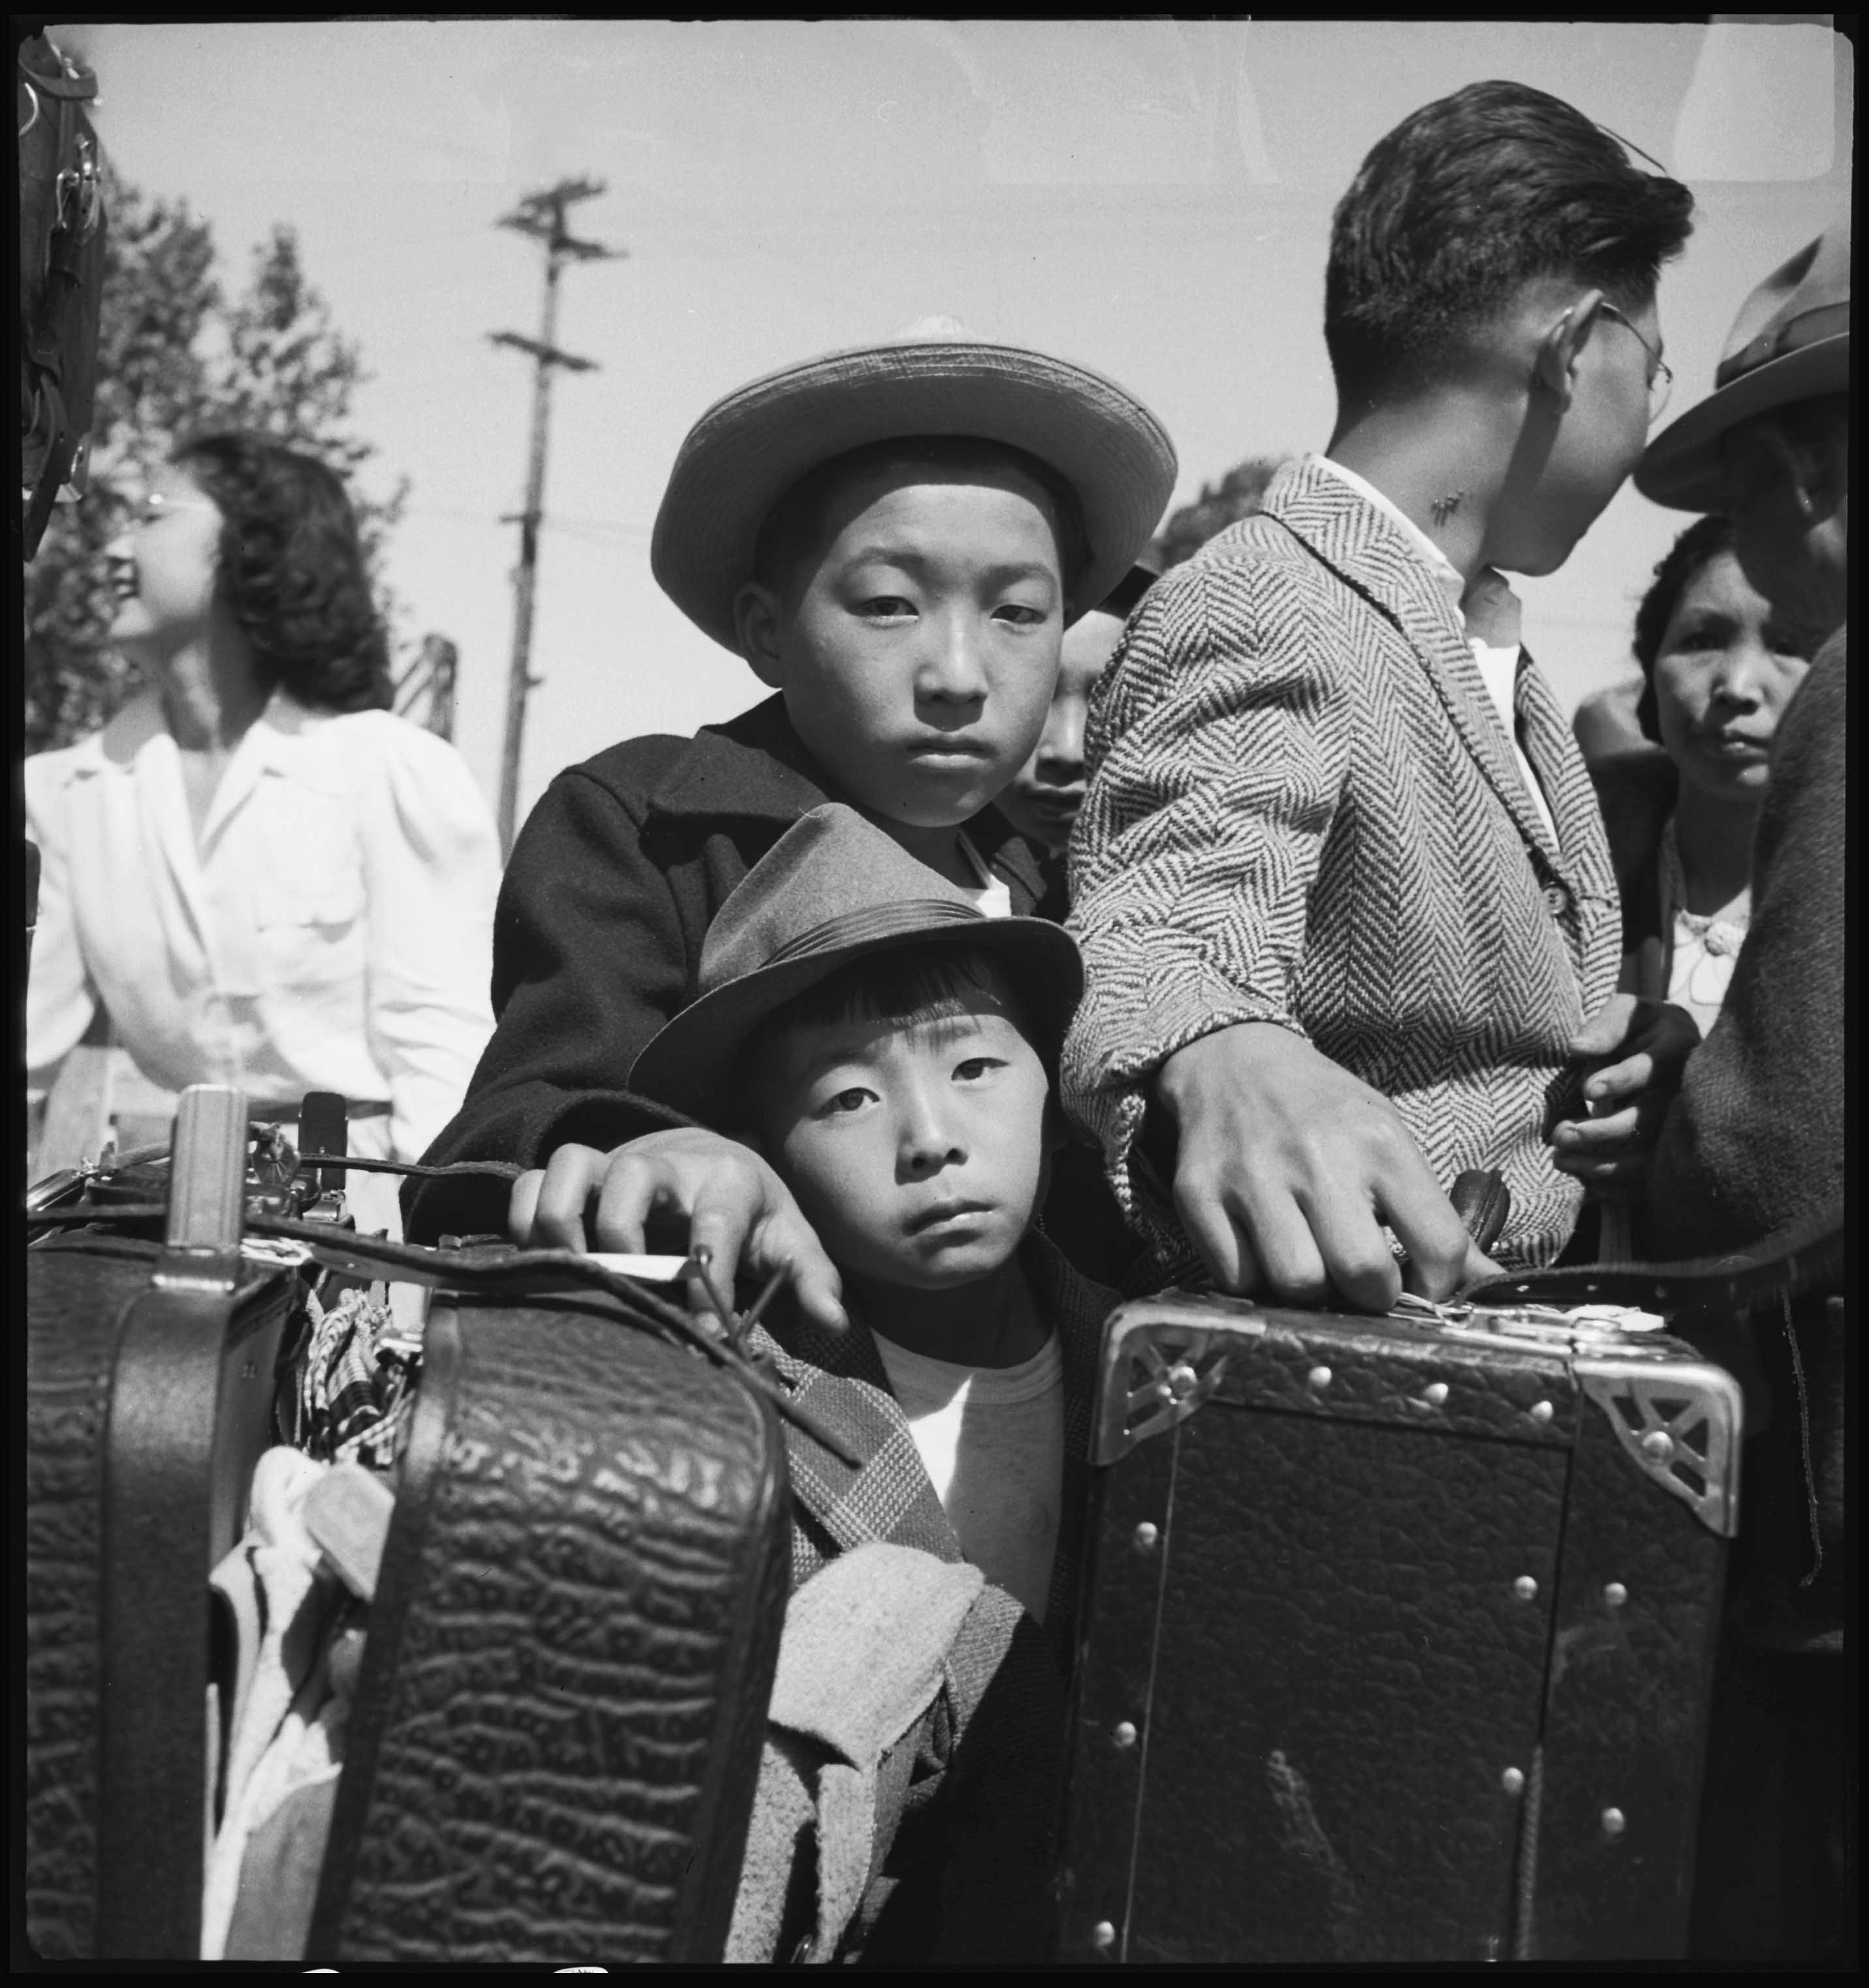 a report on the incarceration of the japanese americans in america Despite history, japanese americans and african americans are working together to columnist rev hamilton t boswell consistently called for cooperation between communities of color and condemned the incarceration of japanese americans as the greatest disgrace of america abroad.